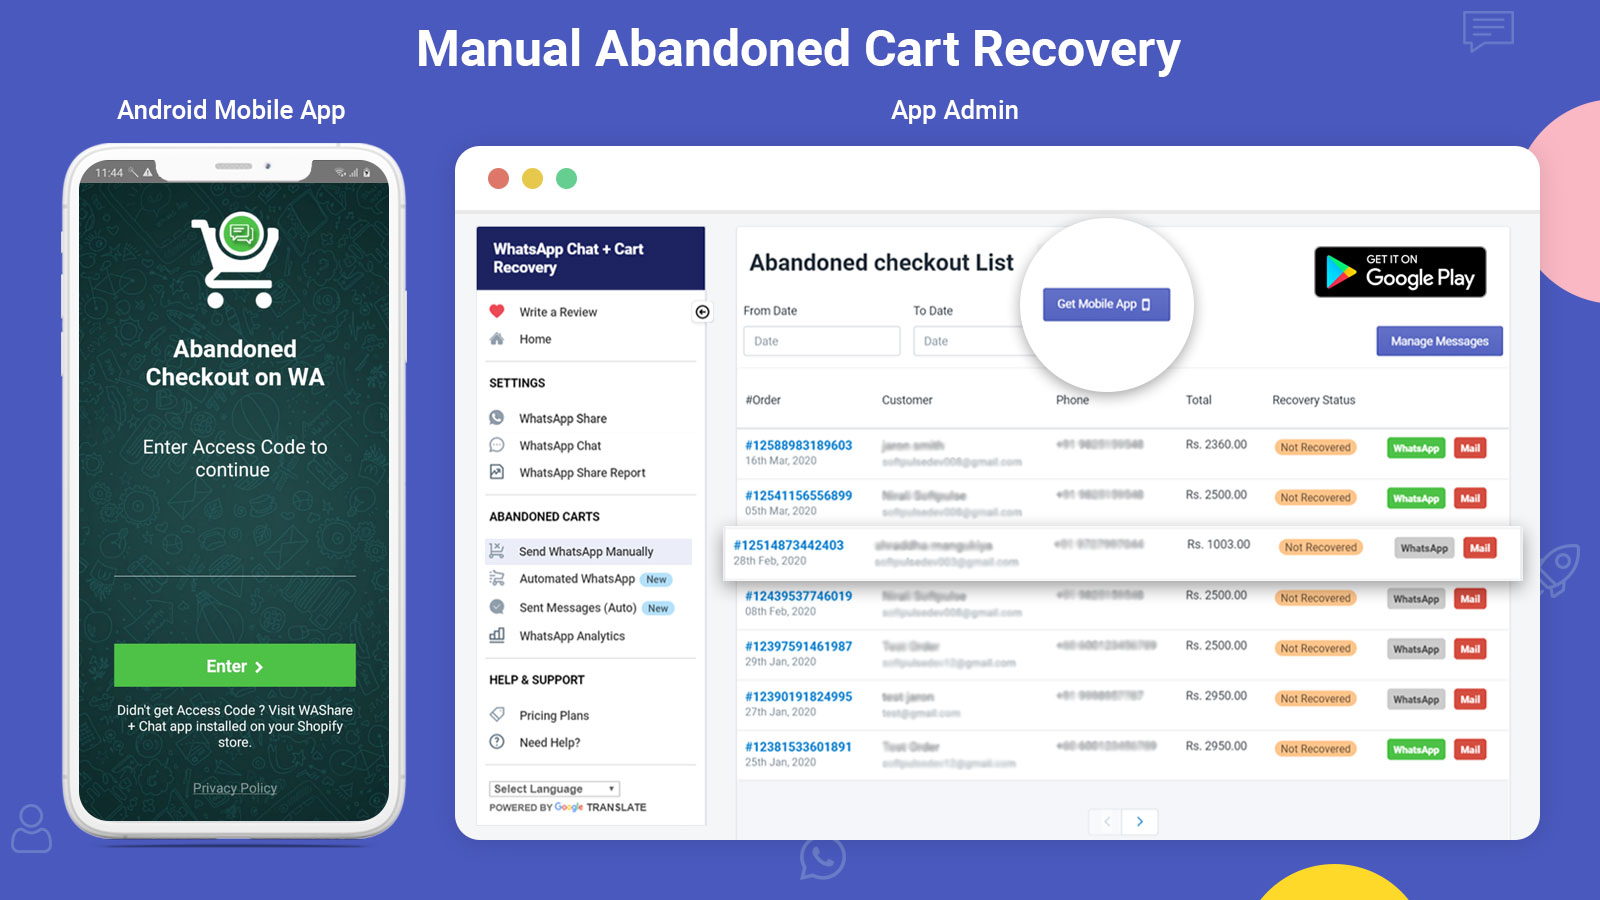 manual abandoned recovery using android, iOS app & app admin